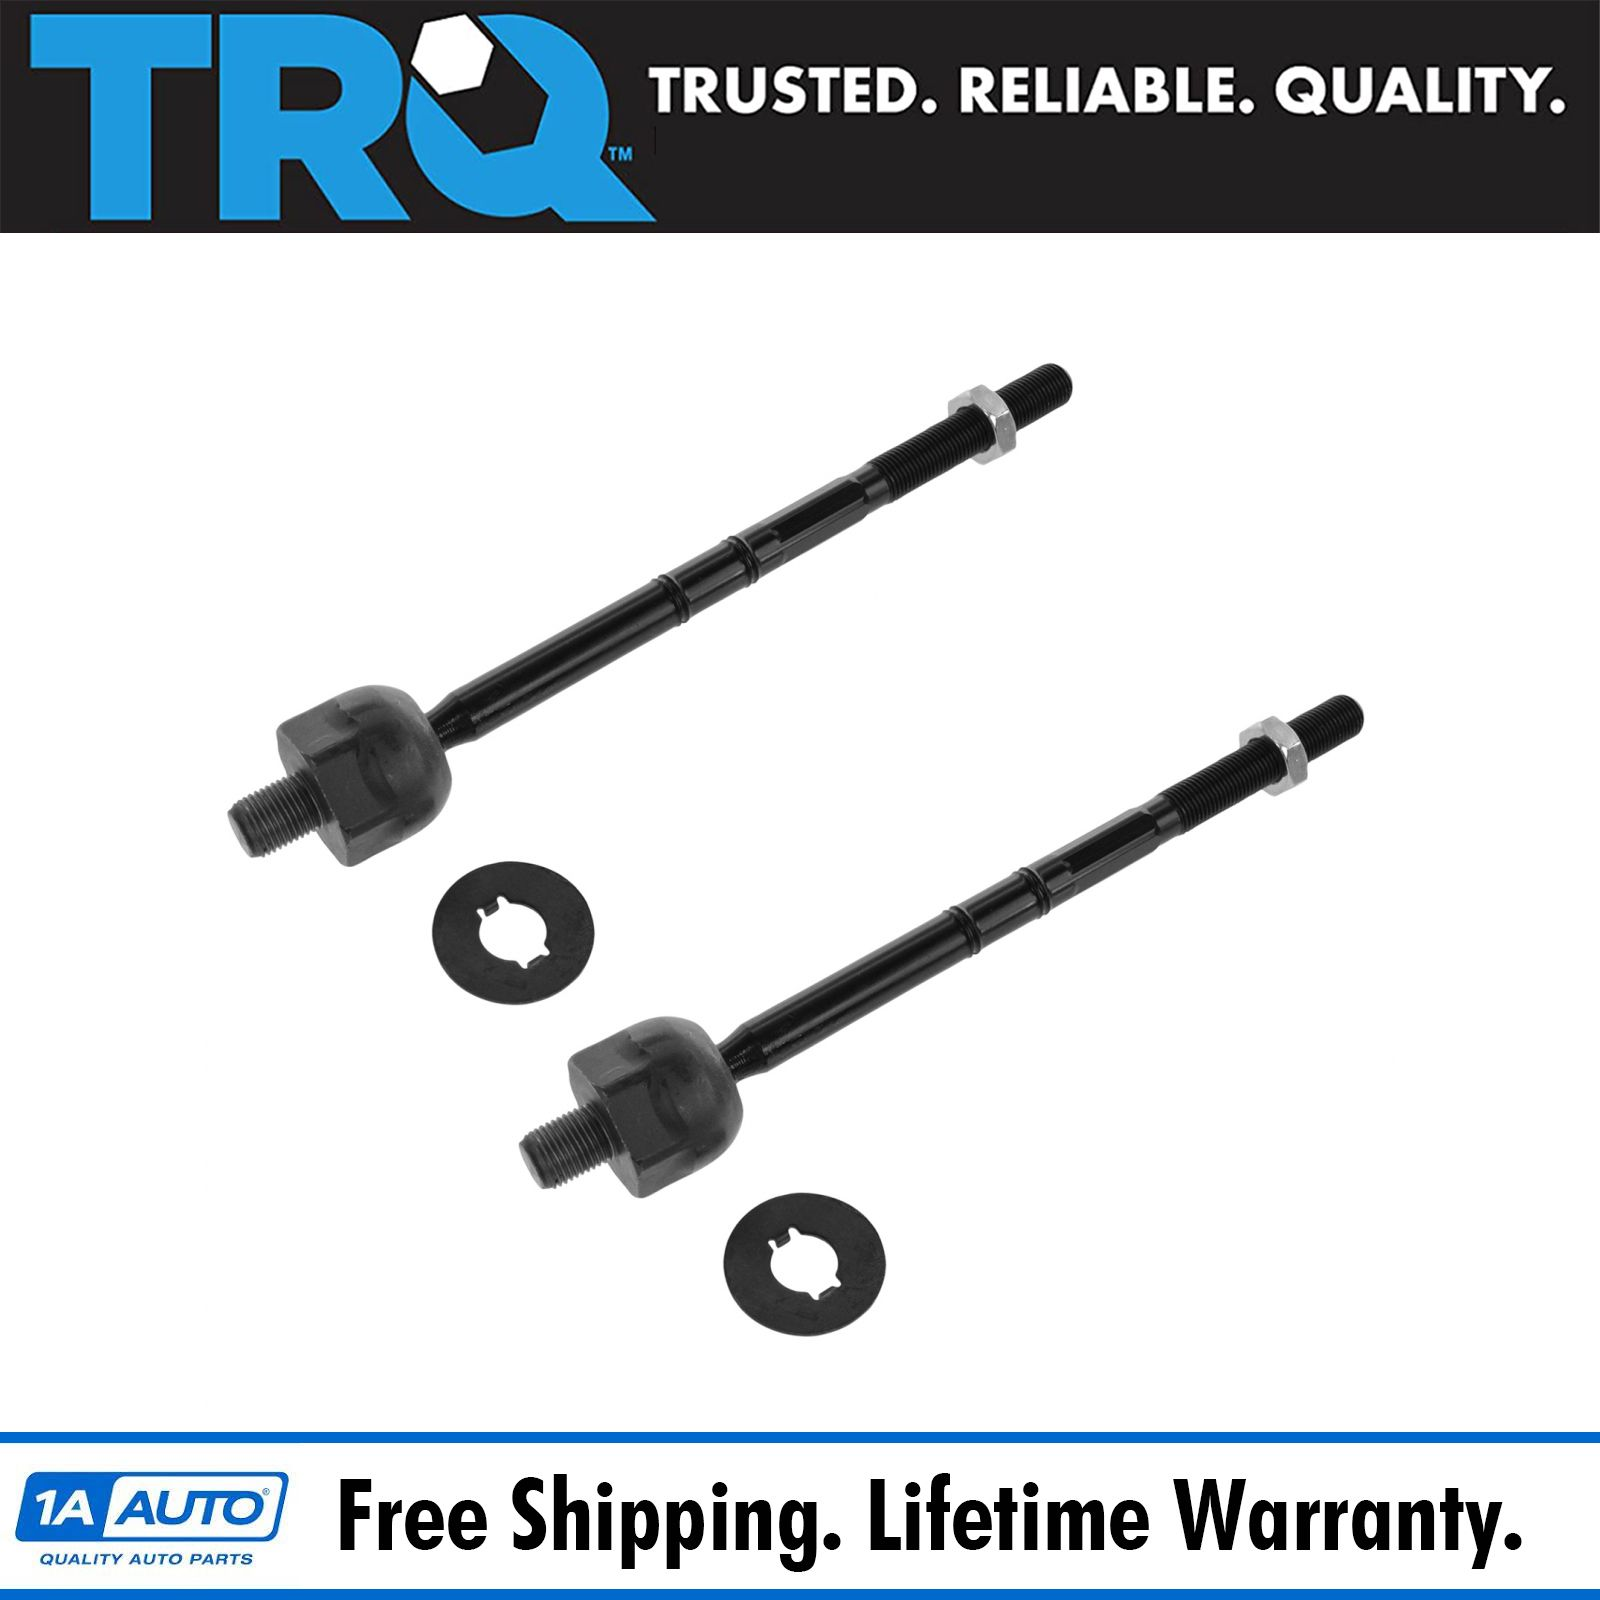 Set of 2 Outer Steering Tie Rod End fits 2013 Ford Flex for Left /& Right Side